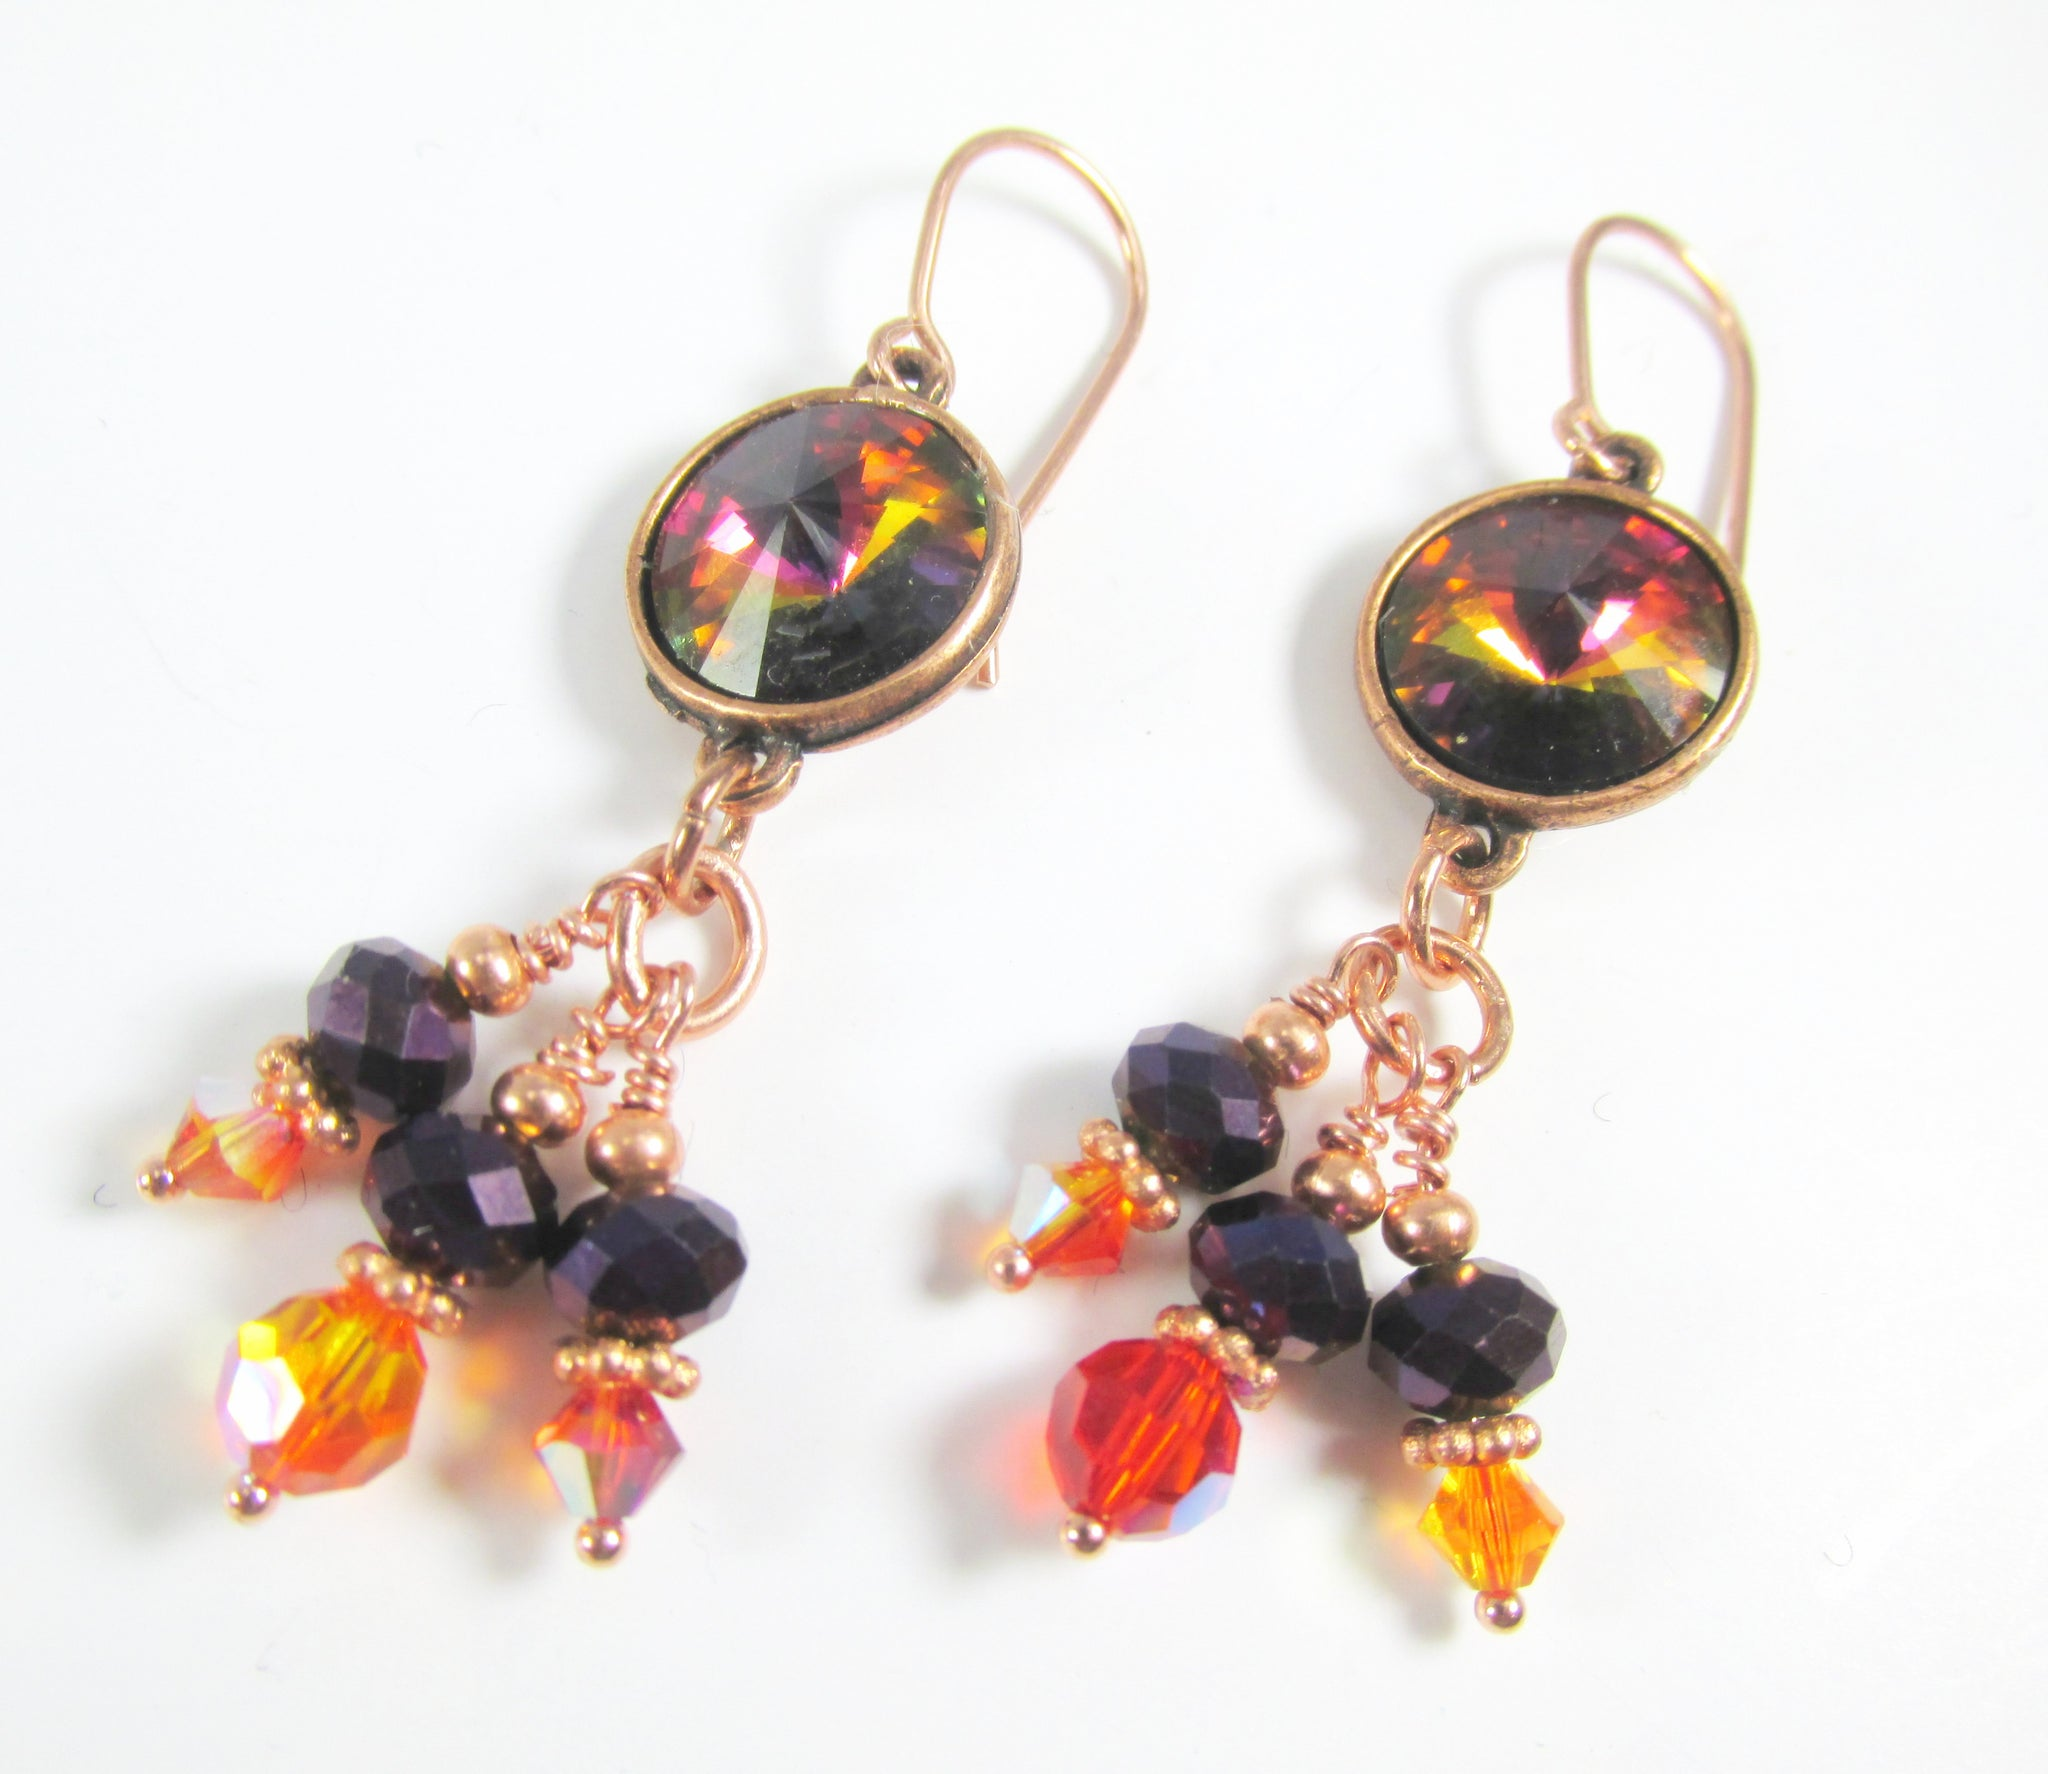 Swarovski Orange and Purple Necklace with Volcano Rivoli Crystals set in Copper